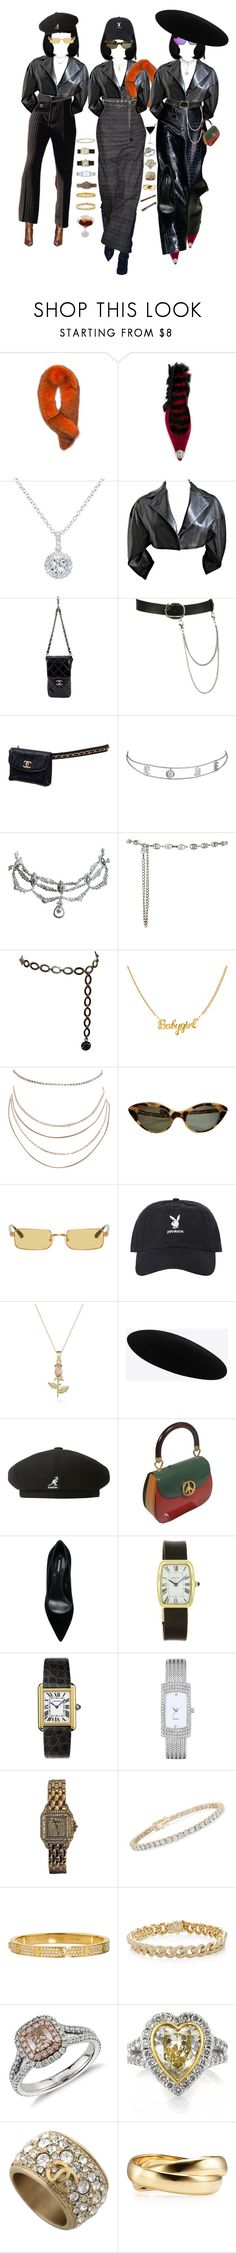 """""""Run up get done up."""" by thaijohnson ❤ liked on Polyvore featuring Andrew Marc, Andrea Bogosian, EWA, Alaïa, Chanel, Wet Seal, Humble Chic, Dries Van Noten, Christian Dior and kangol"""